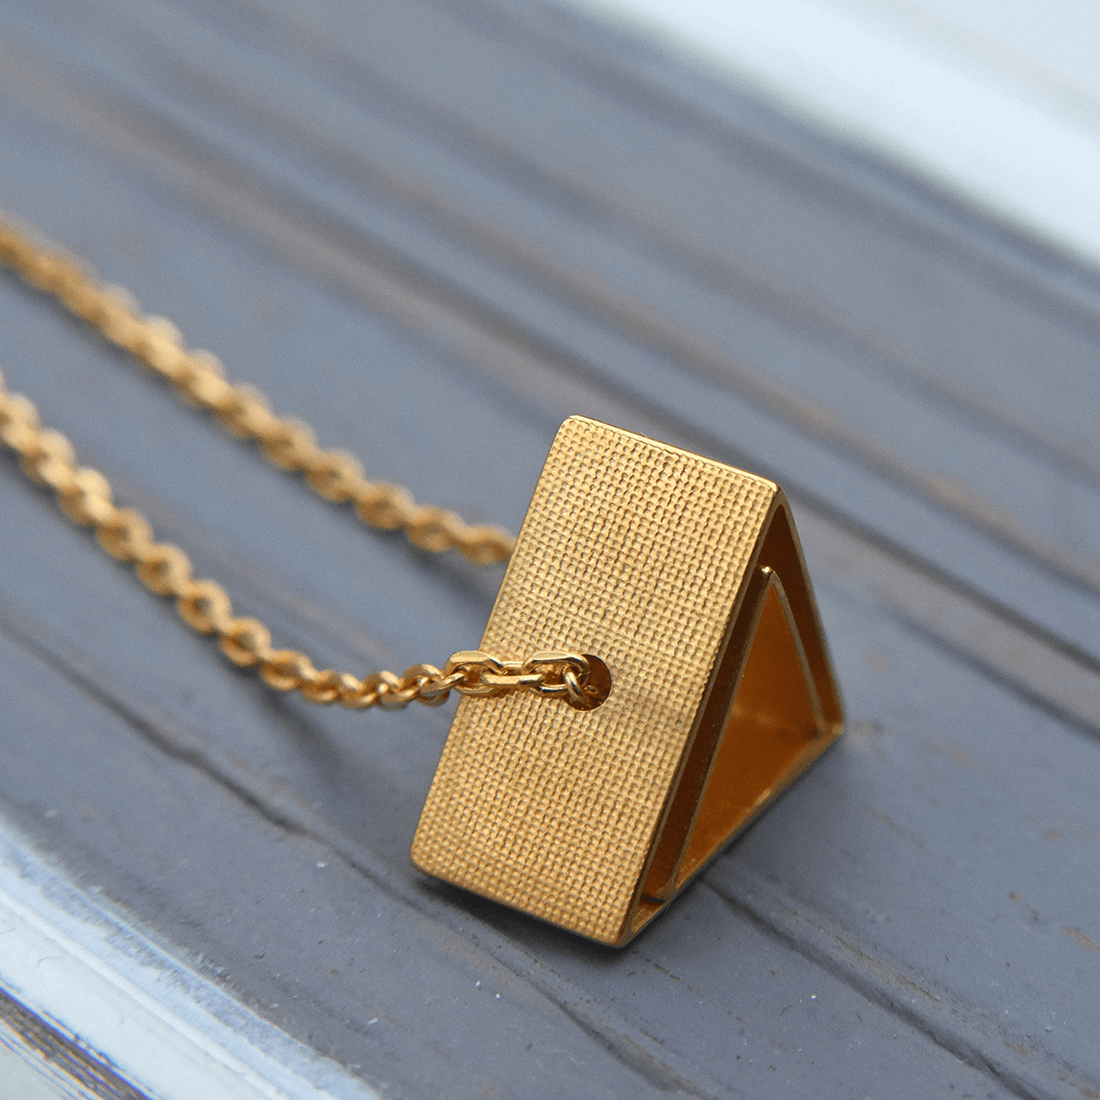 kei-tominaga-shape-in-shape-necklace-triangle-gold-6